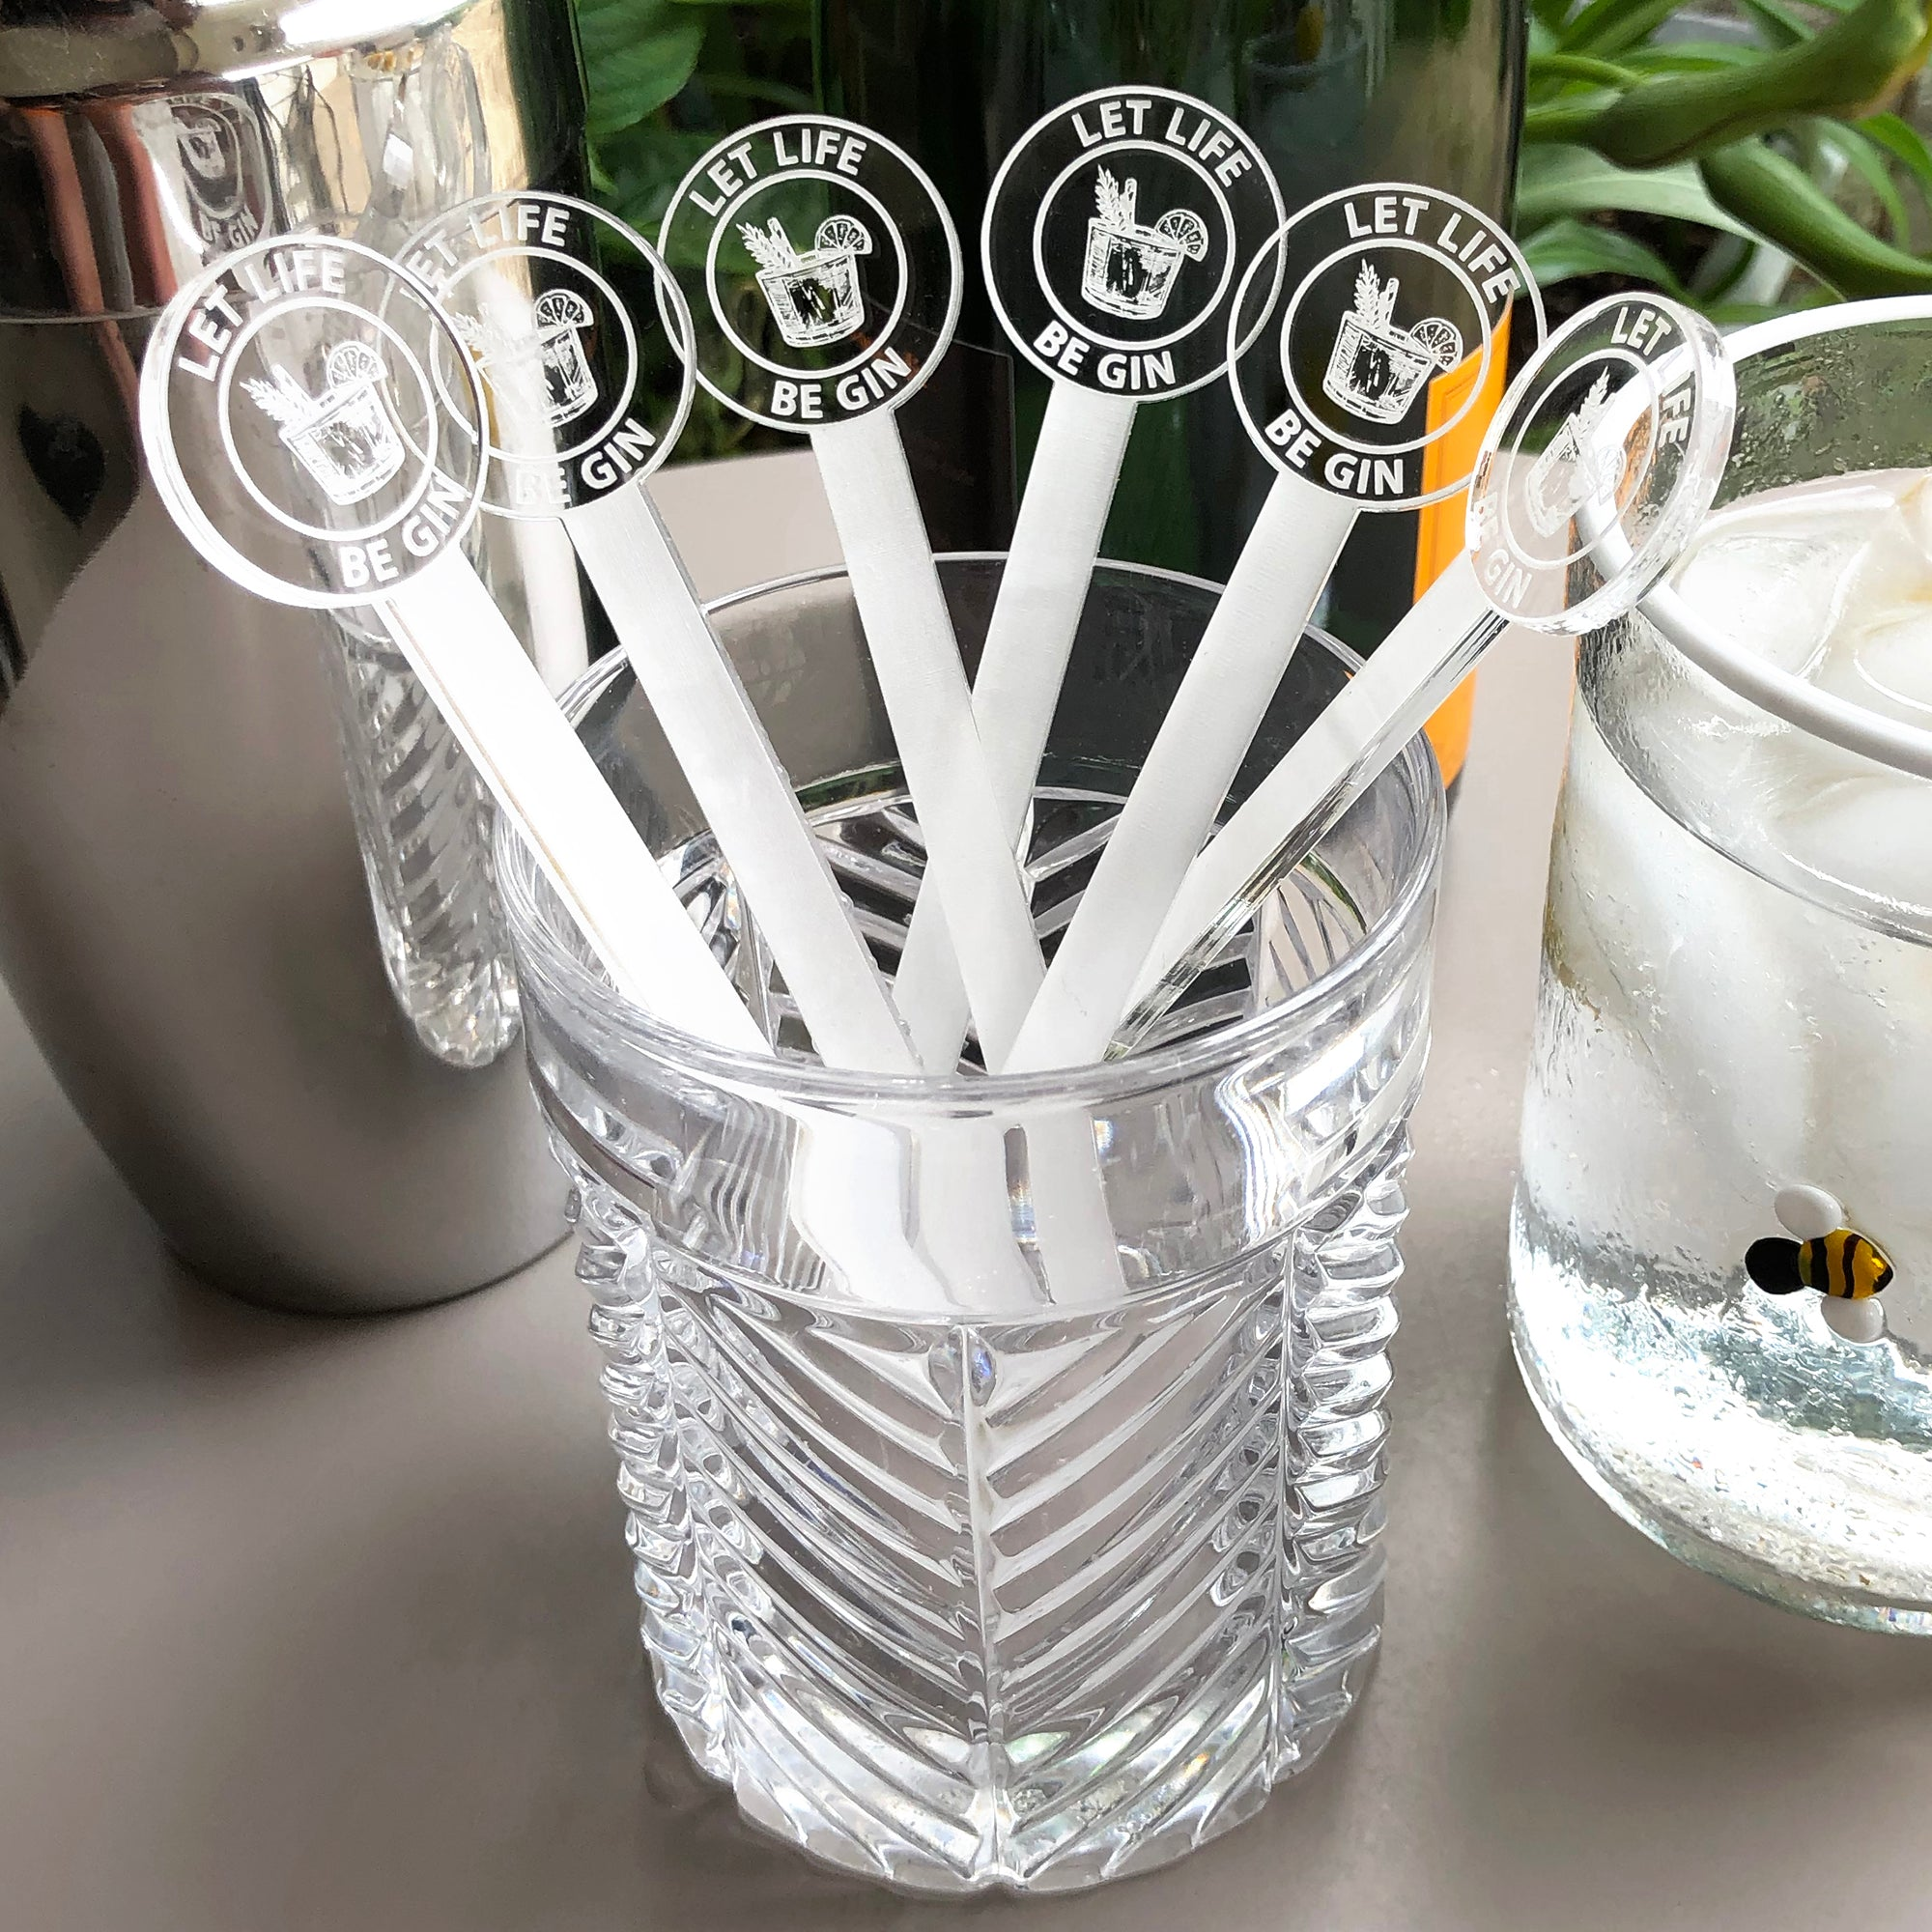 Let Life Be Gin Swizzle Sticks | Brit and Bee